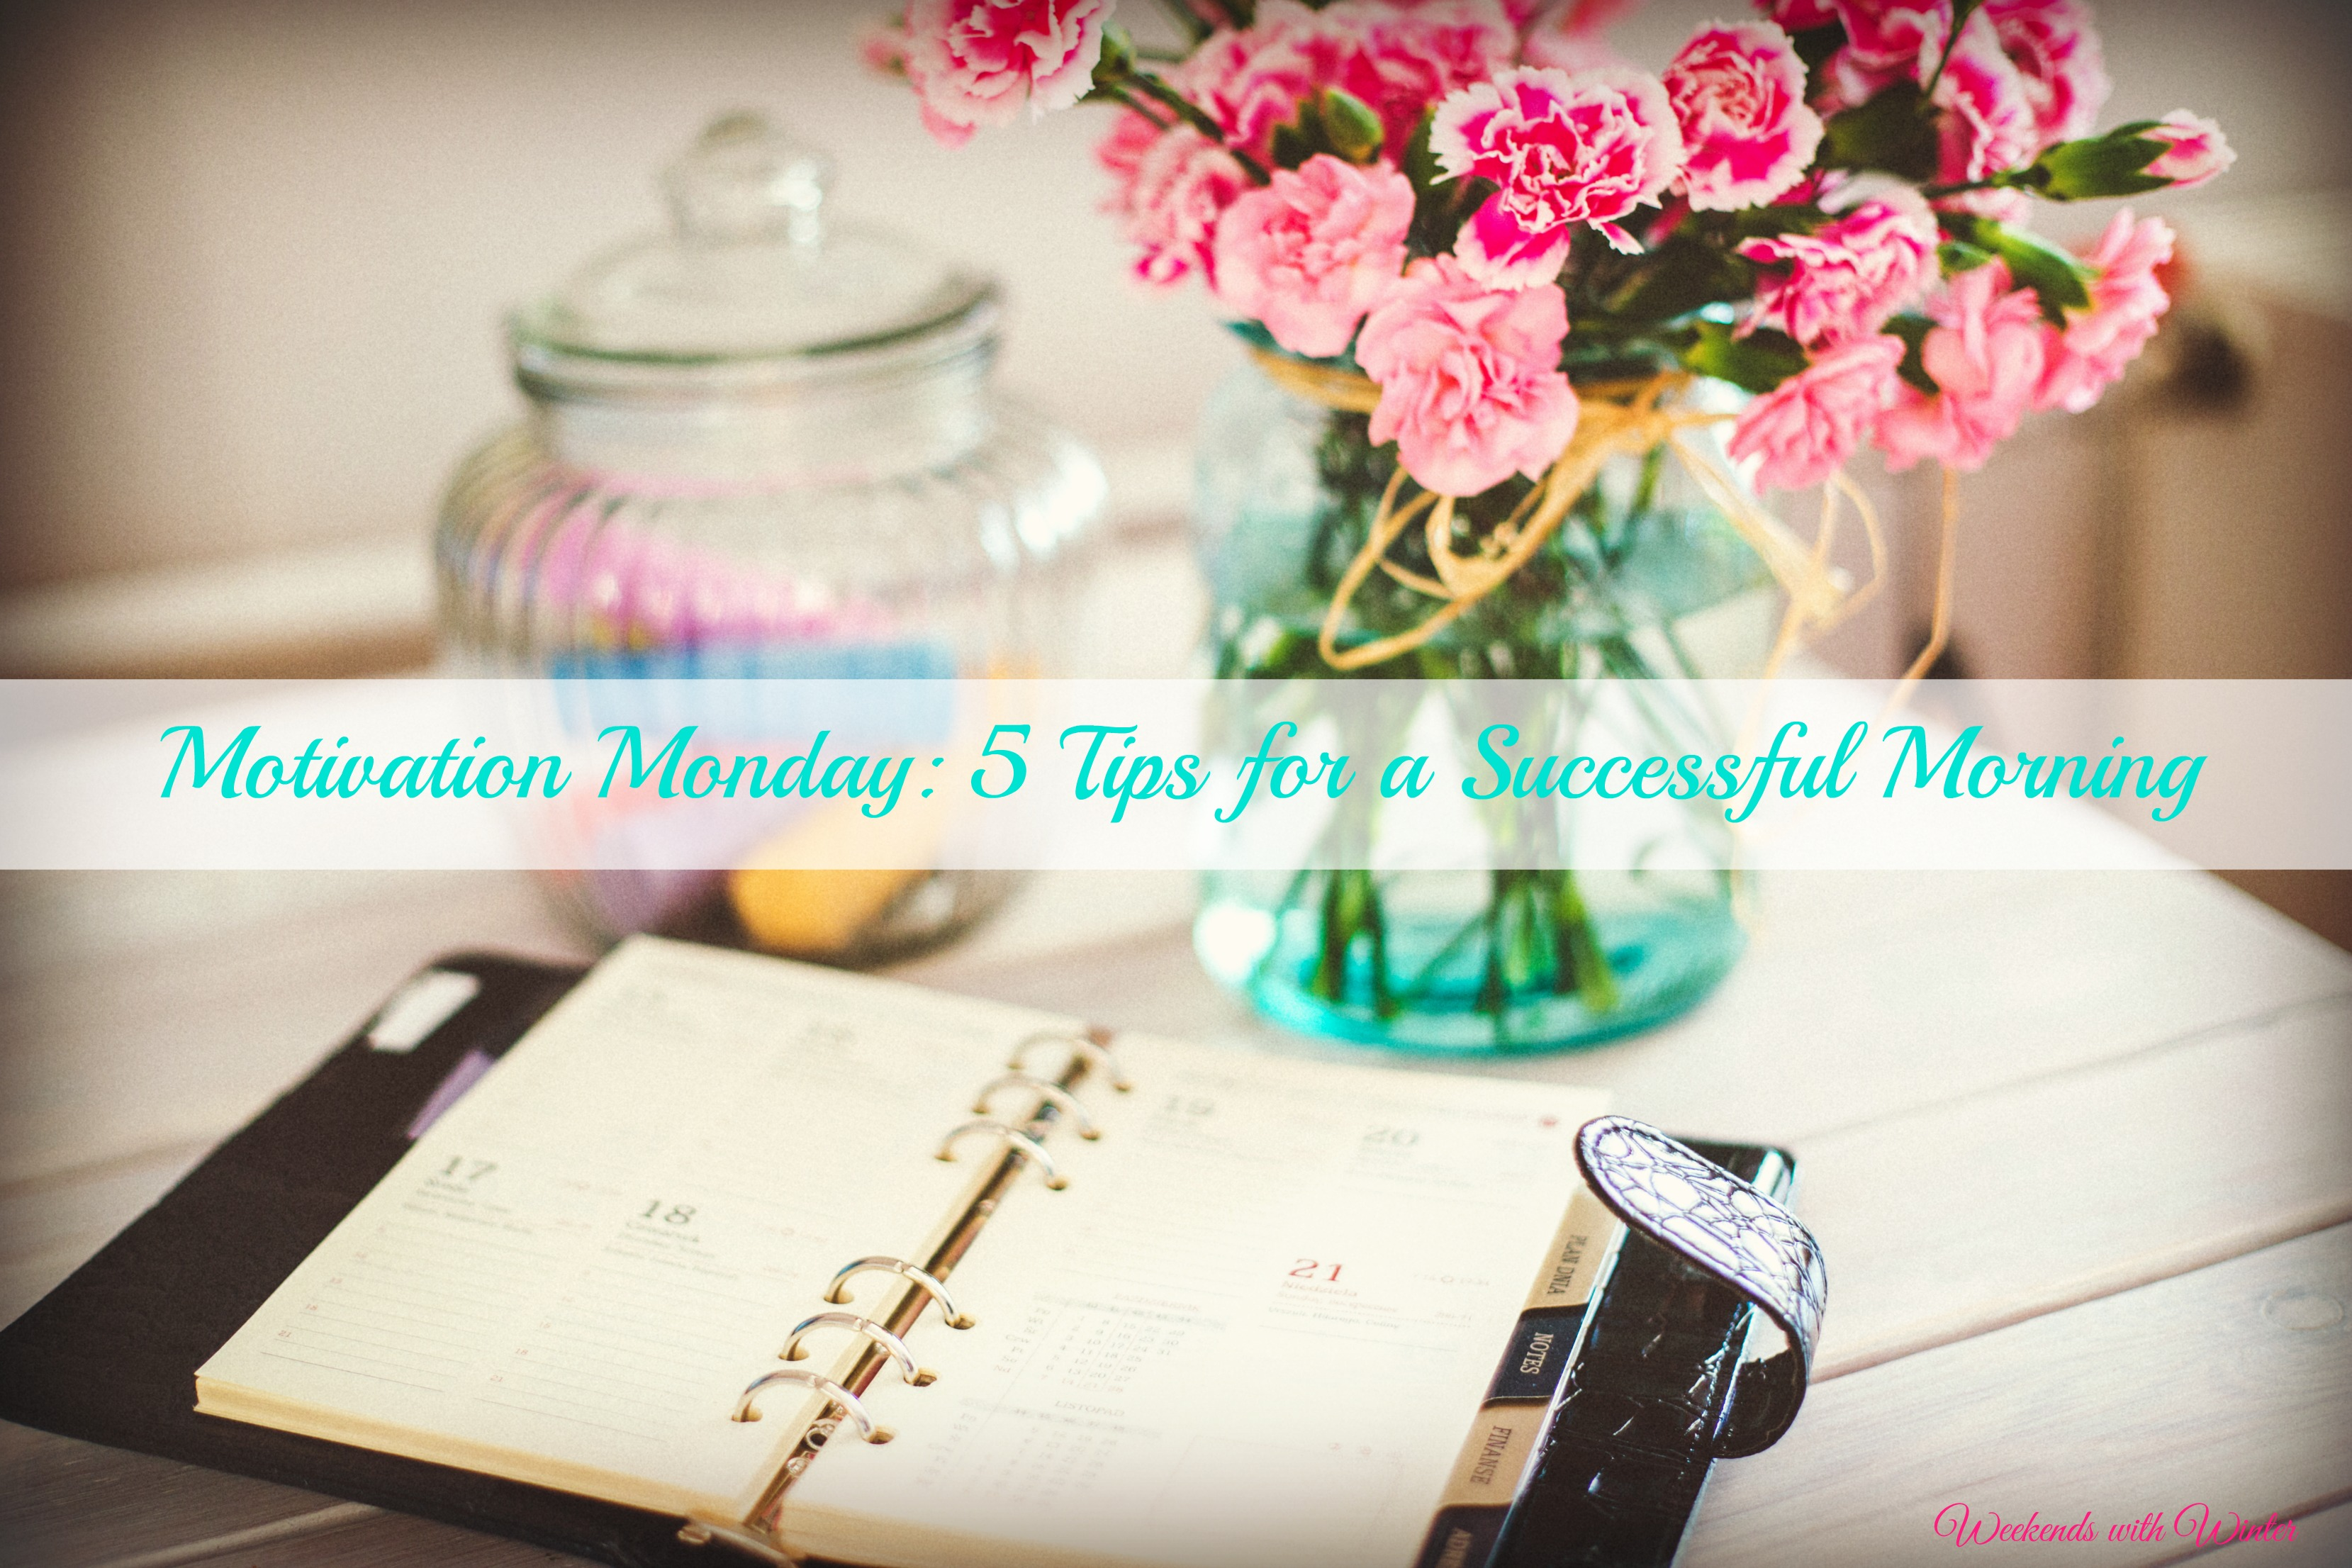 5 tips for a successful morning